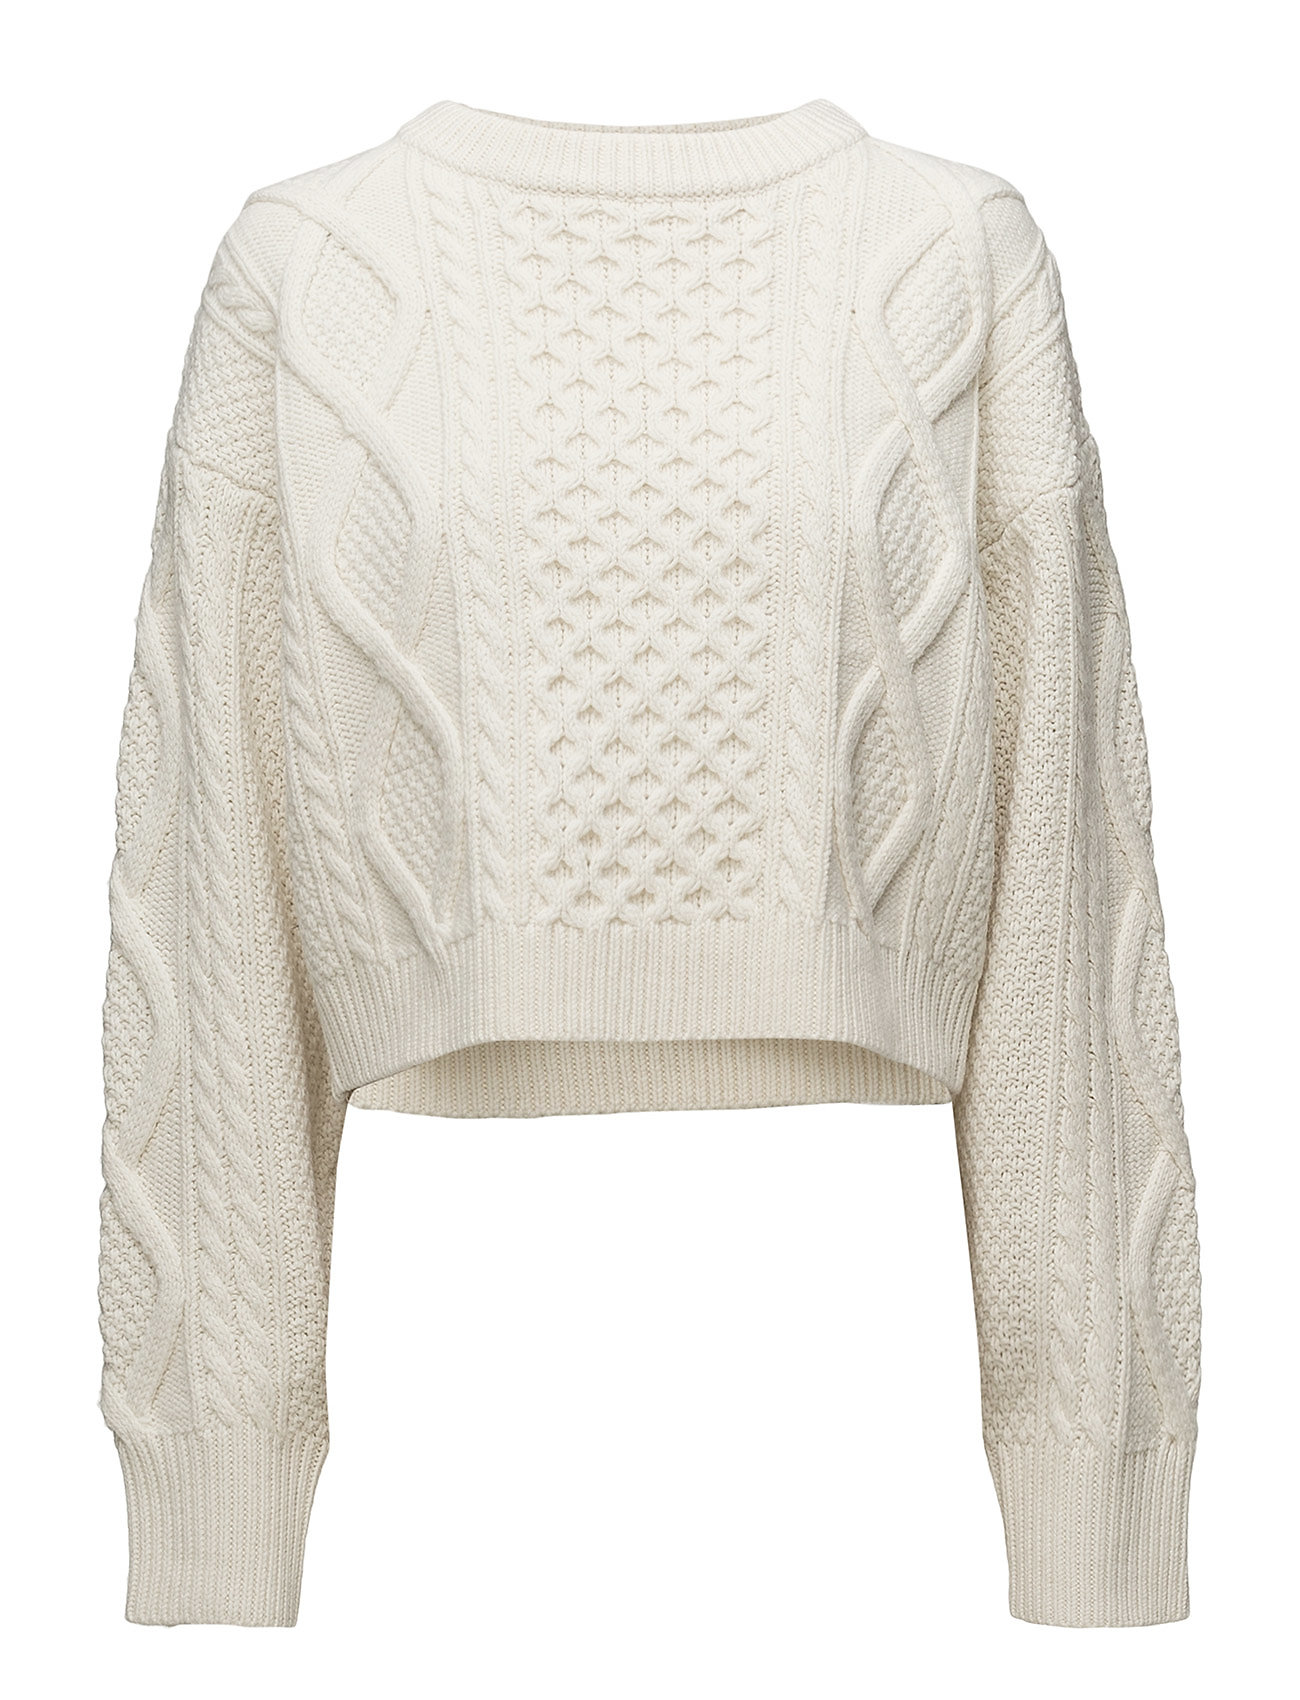 4826ea4561e Ls Cropped Boxy Aran Cable Sweater (Ivory) (2046 kr) - 3.1 Phillip ...